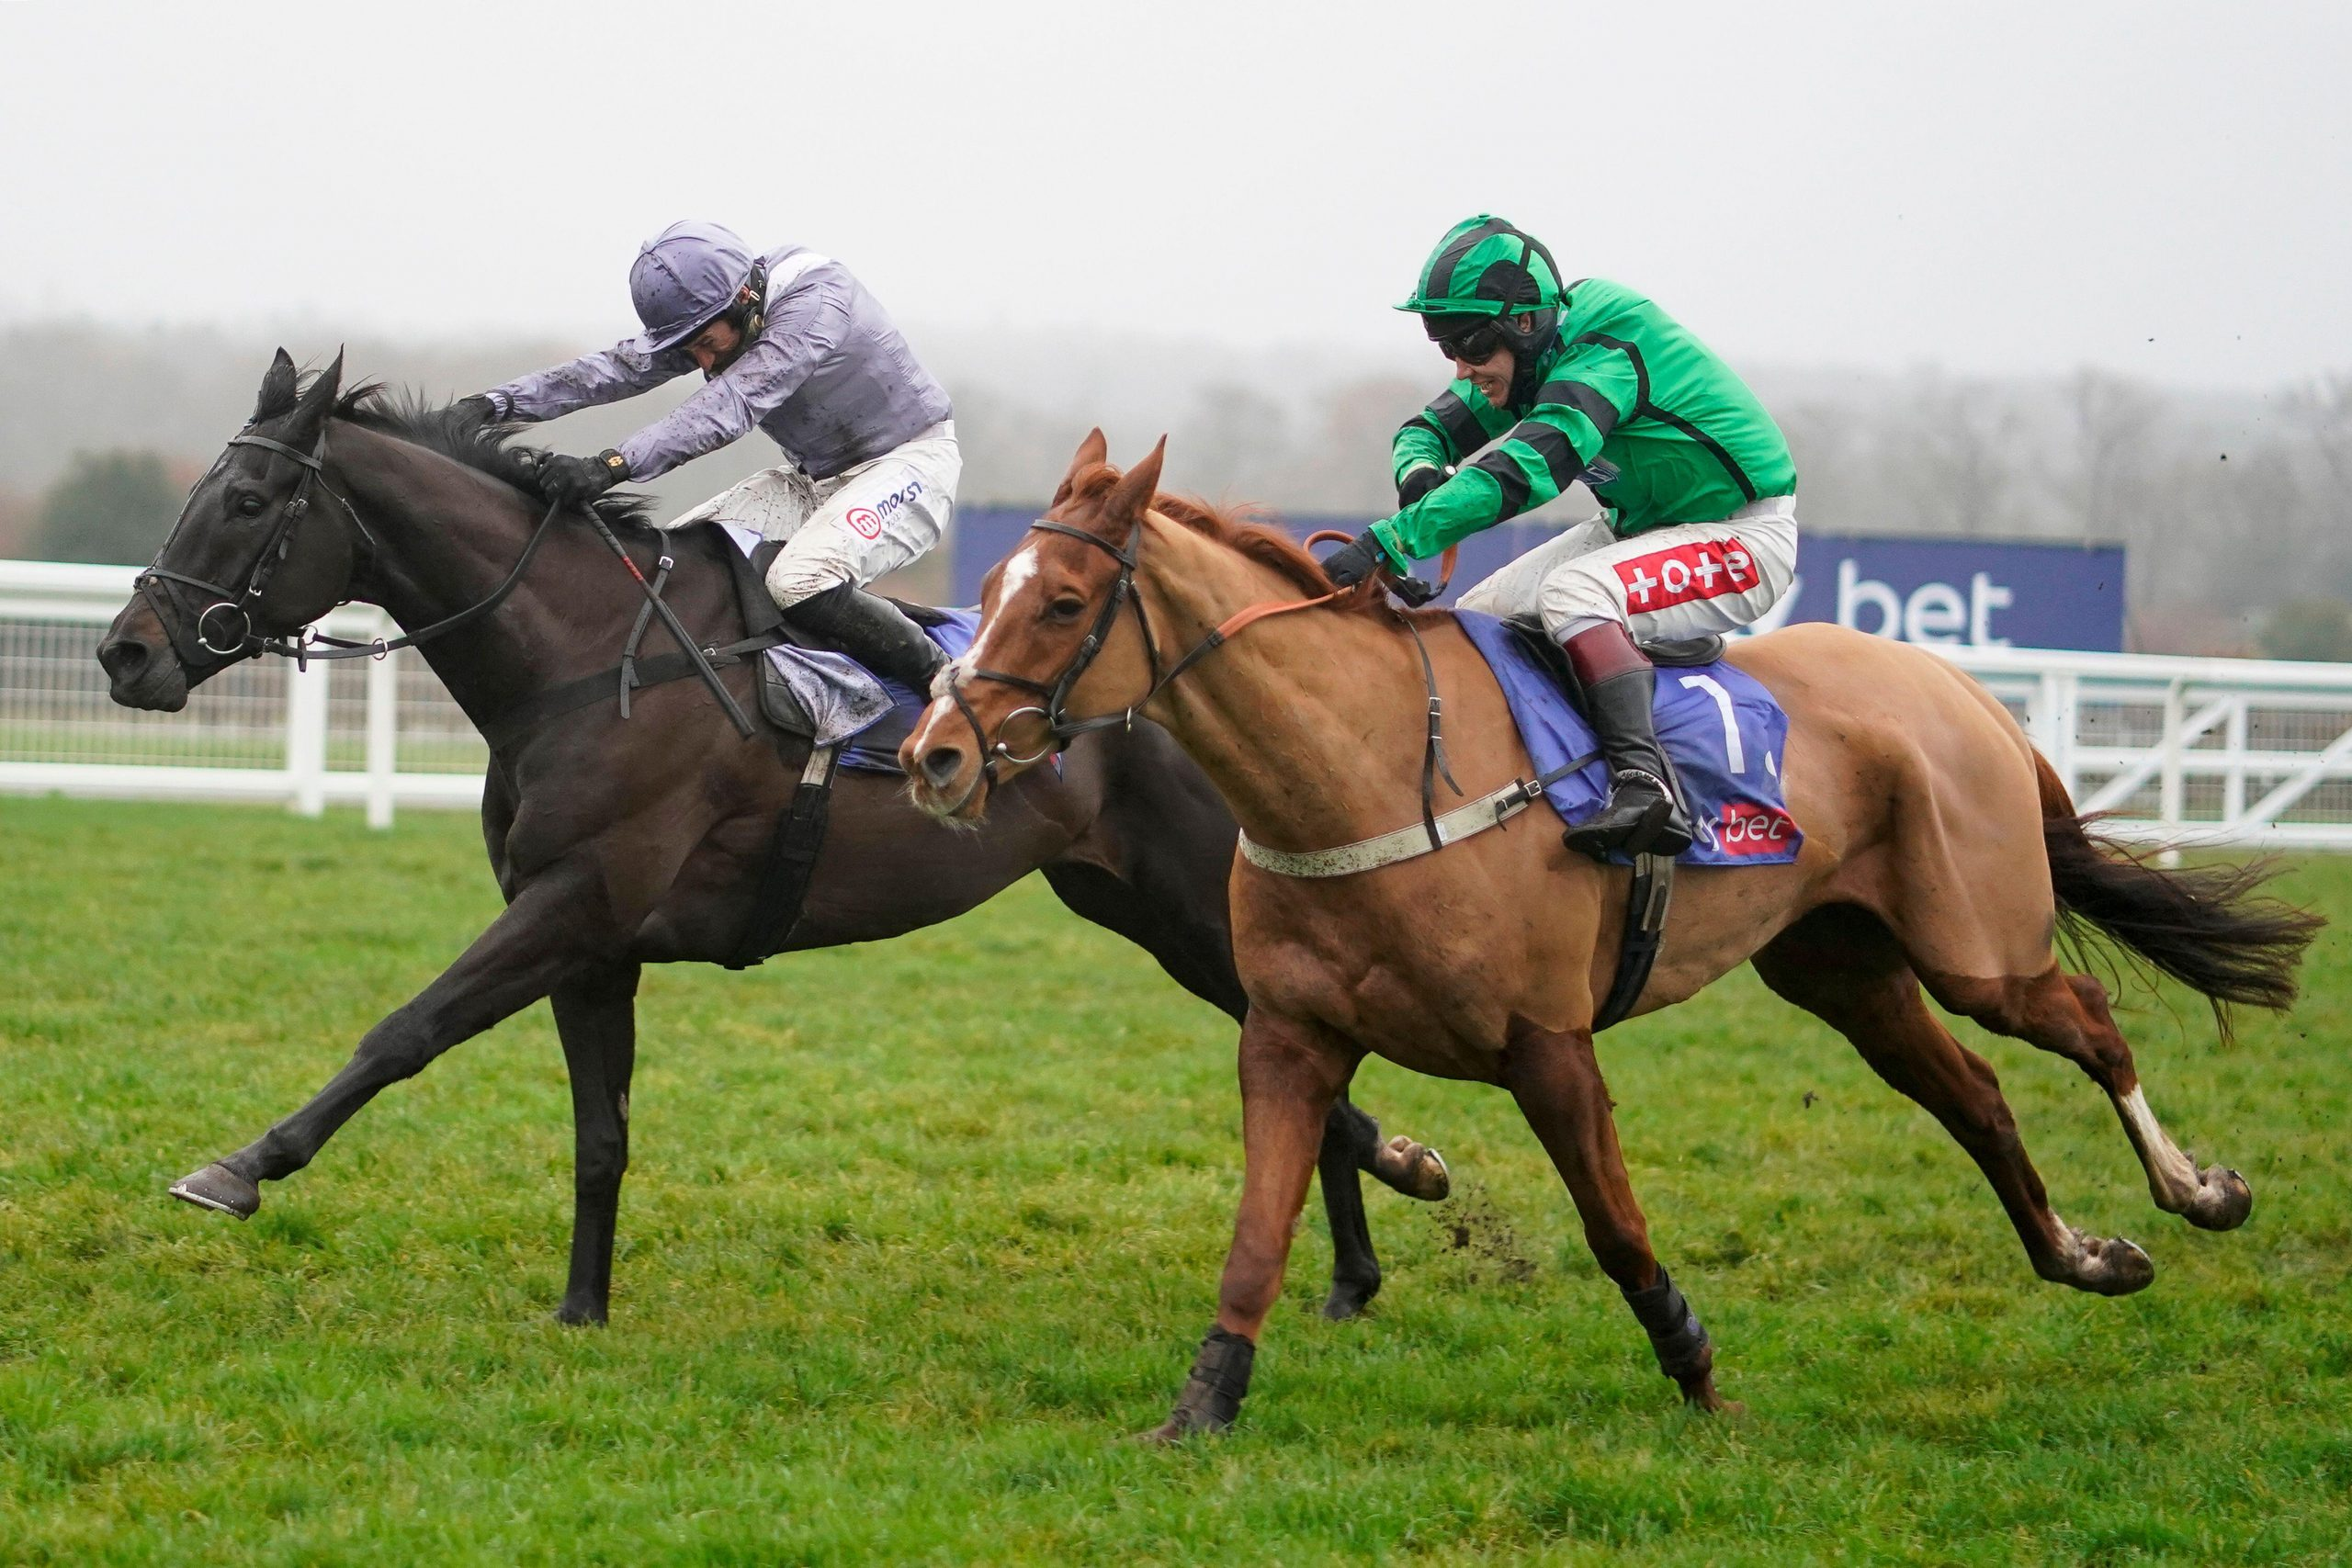 Harry Skelton riding My Drogo (left) race clear to win The Sky Bet Supreme Trial Novices' Hurdle during the December Racing Weekend at Ascot Racecourse.